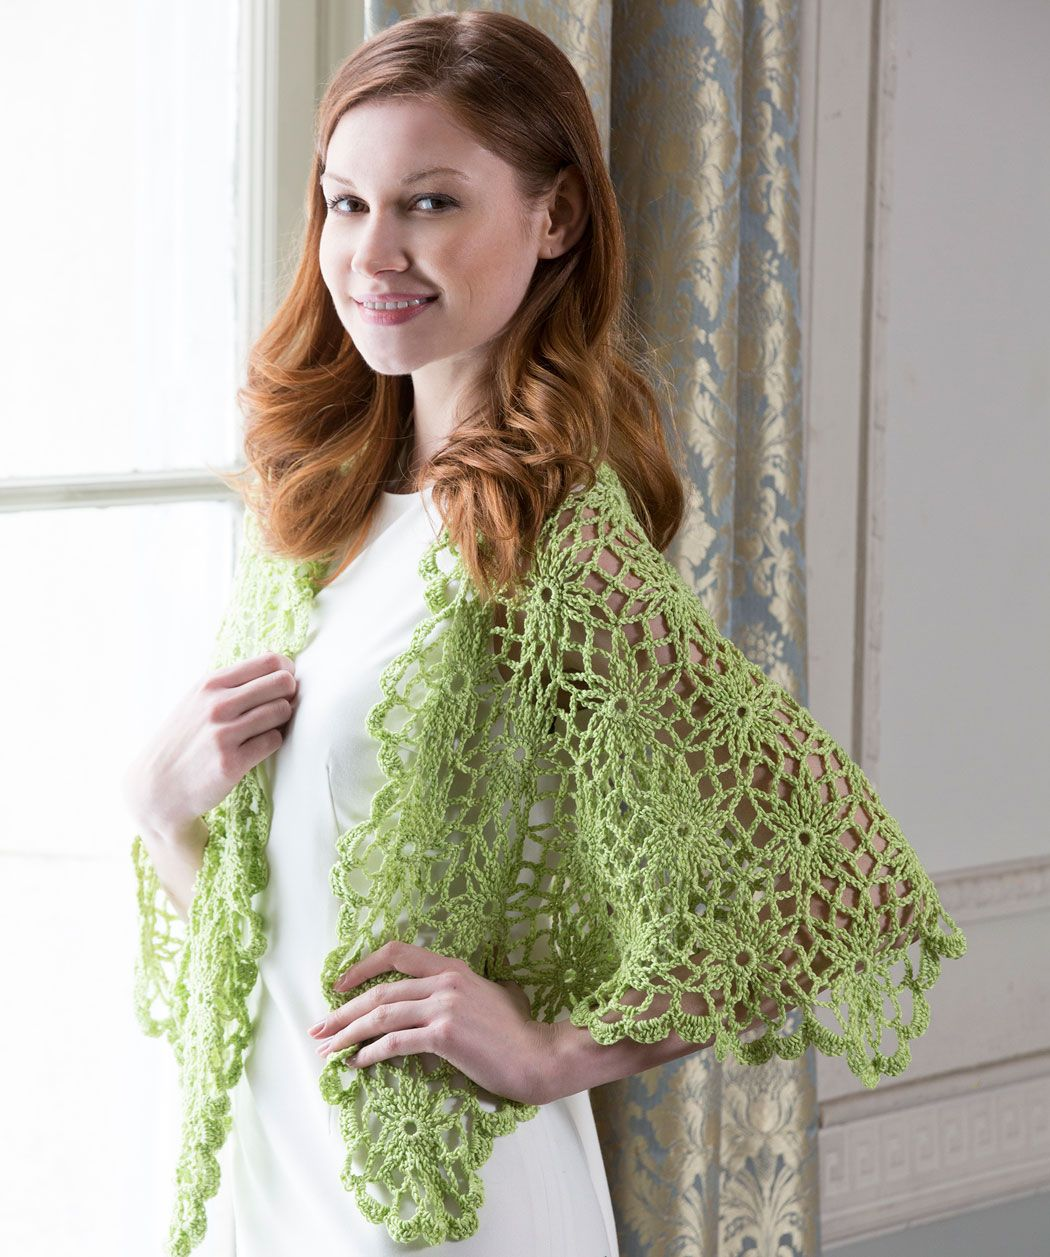 I love paris wrap red heart uk free pattern crochet pinterest i love paris wrap free crochet pattern from red heart yarns i just realized this states uk need to make sure to translate to us terms bankloansurffo Image collections